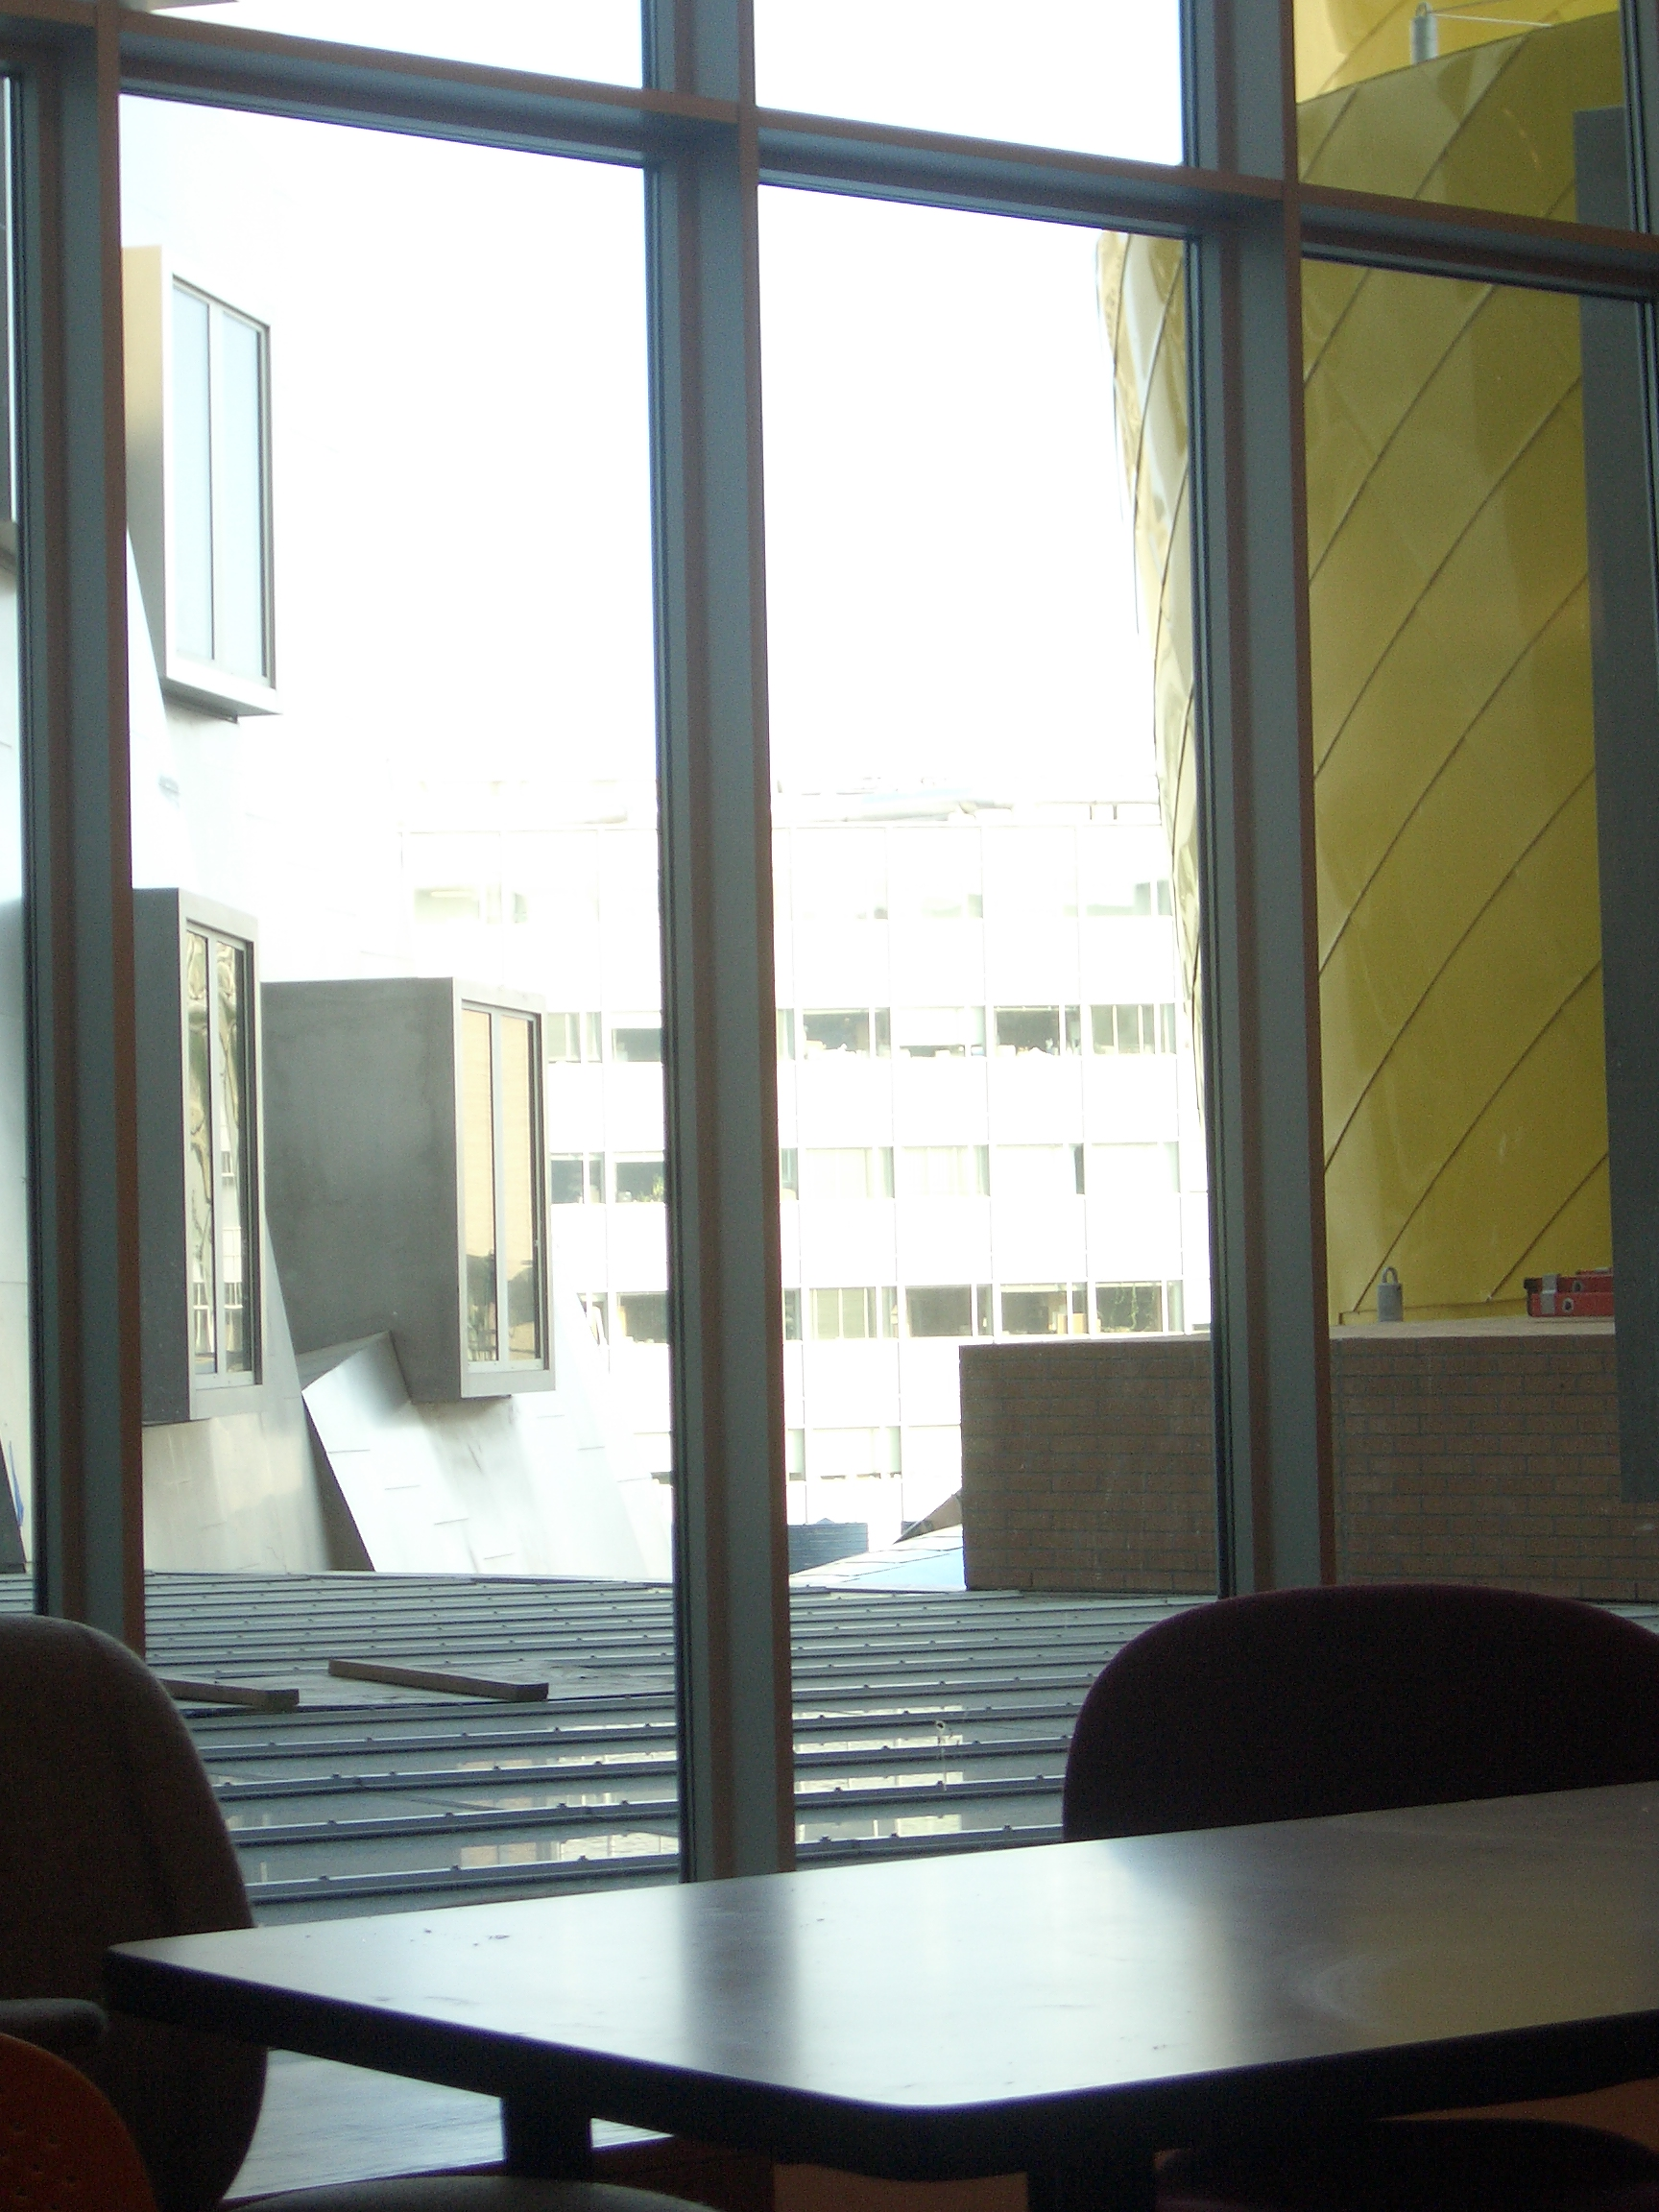 [Picture: View from my office window 4]